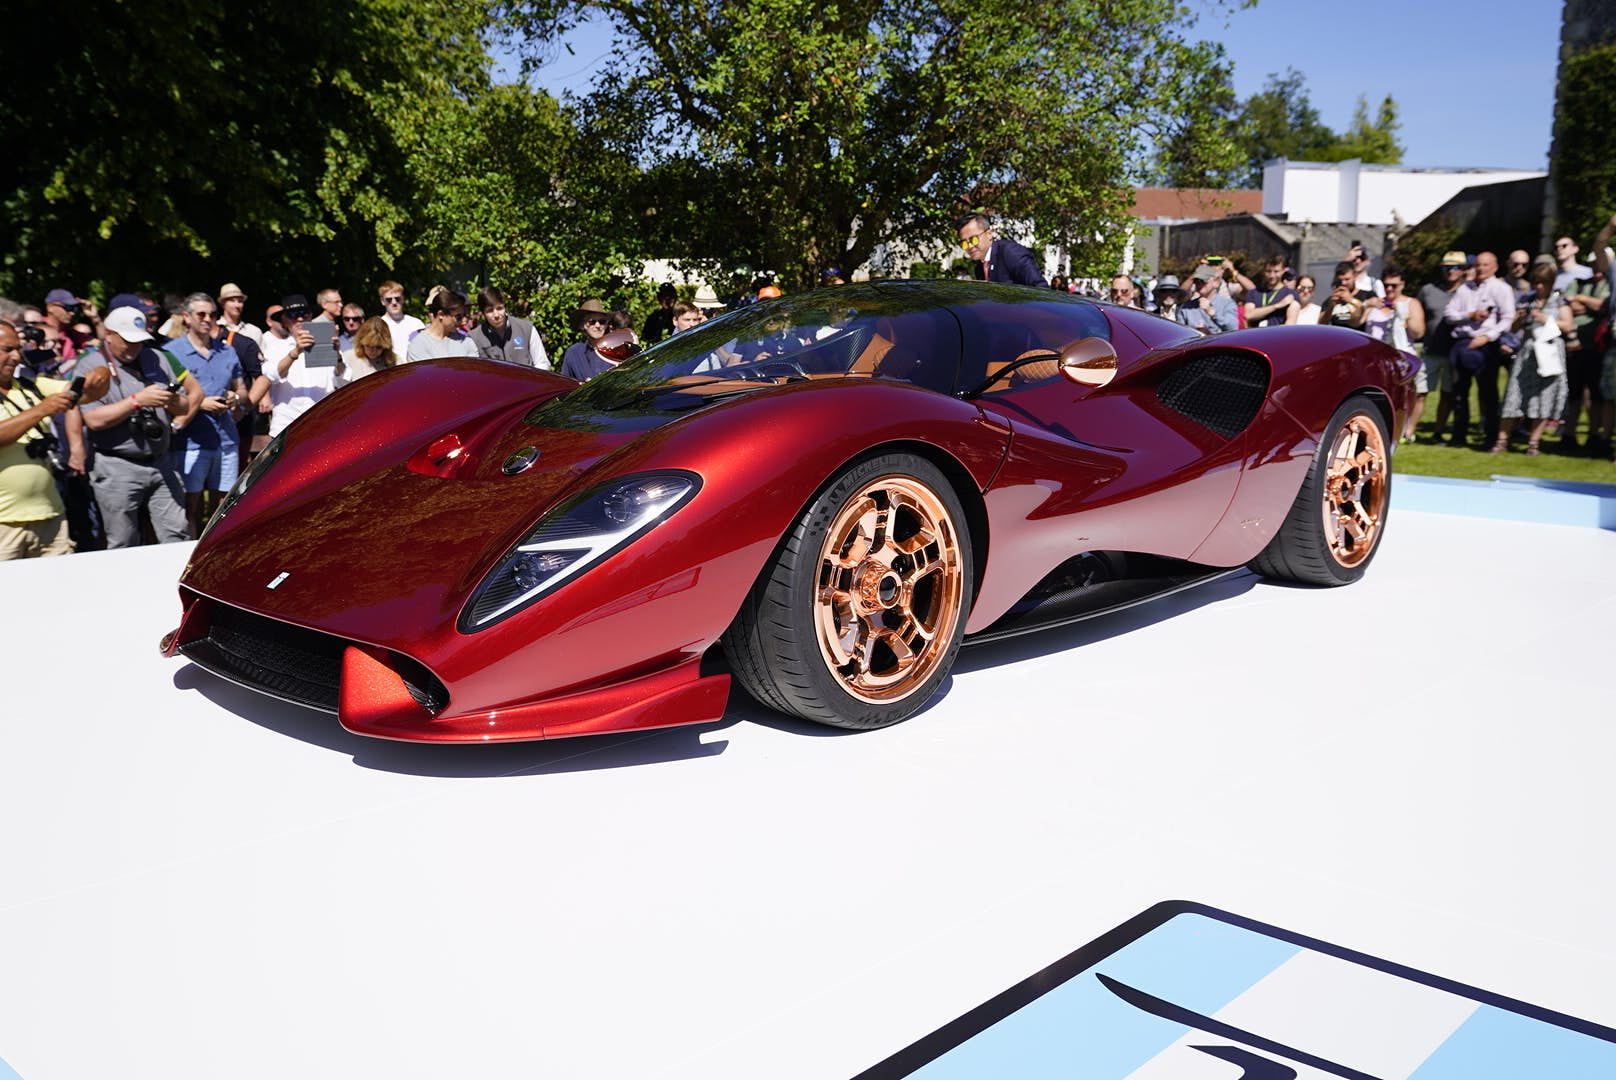 Extraordinary curves of the De Tomaso P72 stun the Goodwood crowd